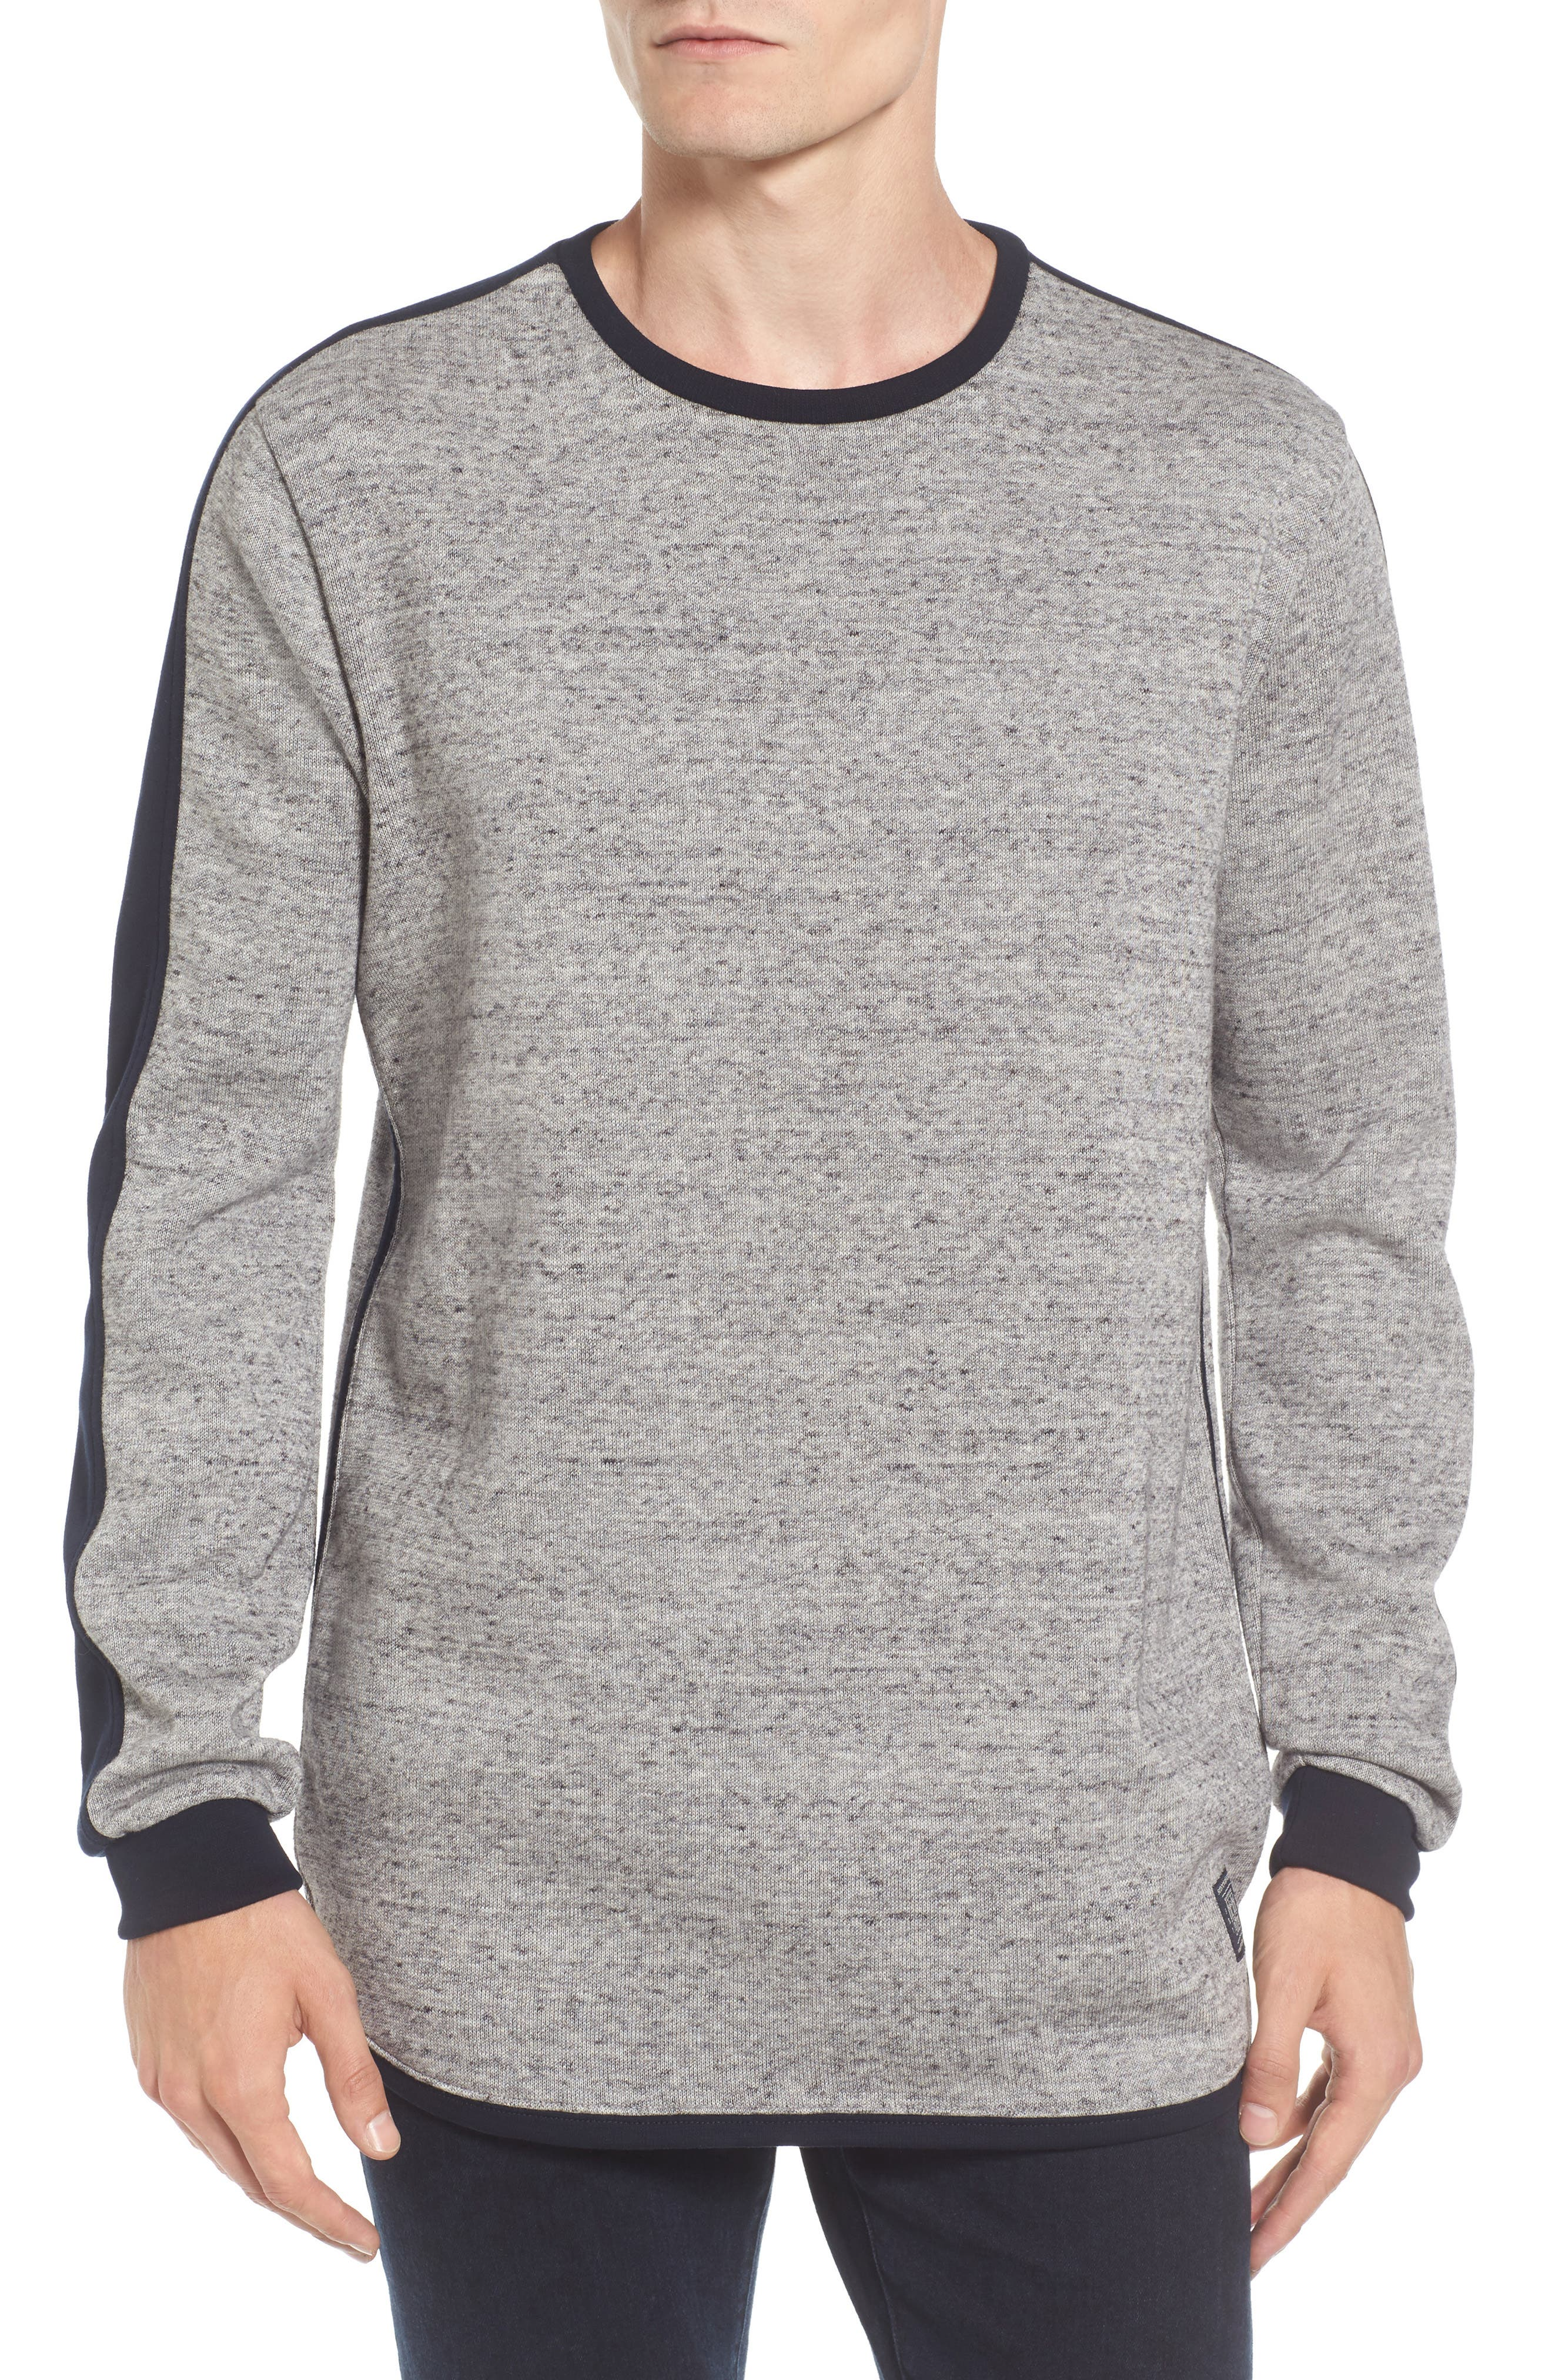 Scotch & Soda Panel Sweatshirt